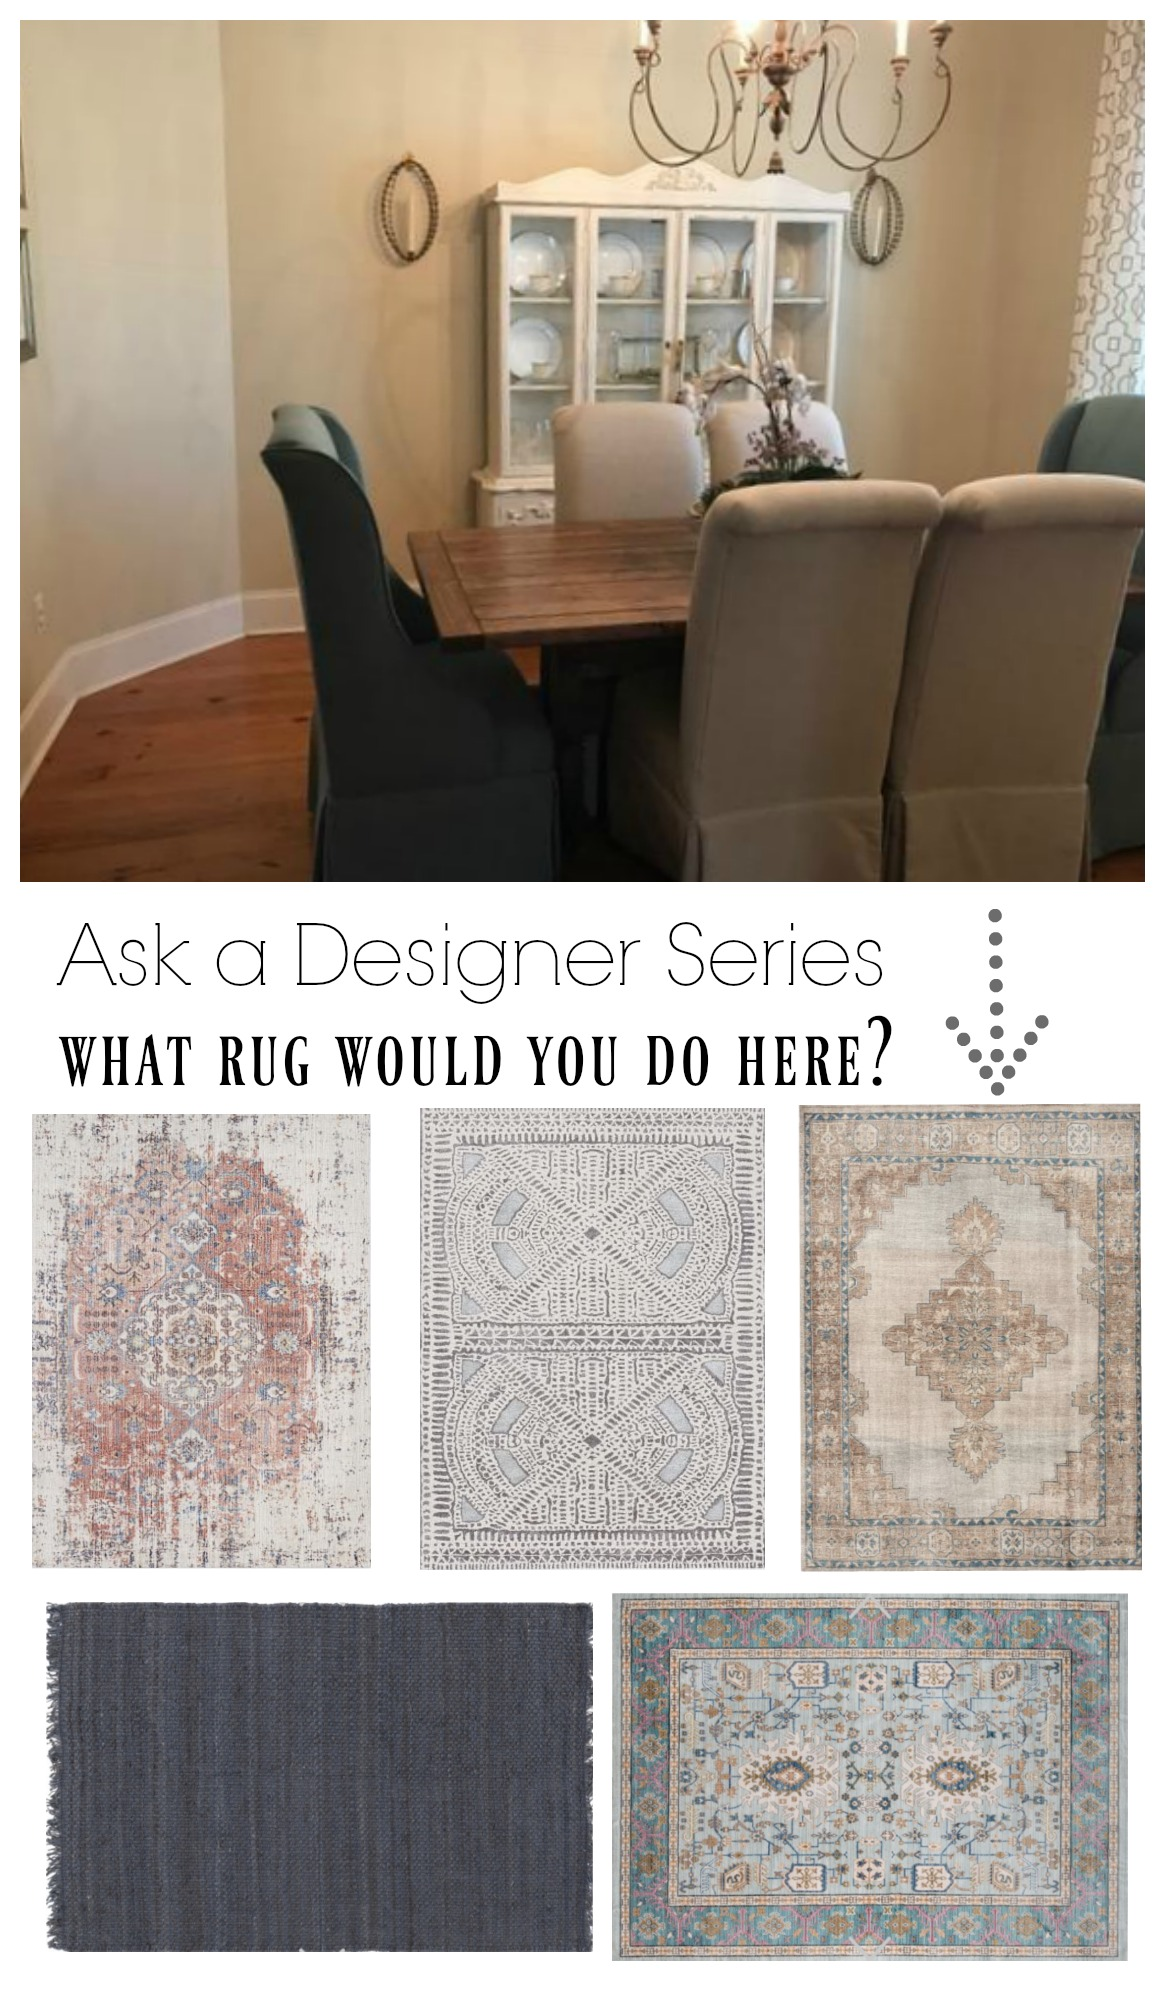 Ask a Designer Serires- What Rug would you do in this dining room?